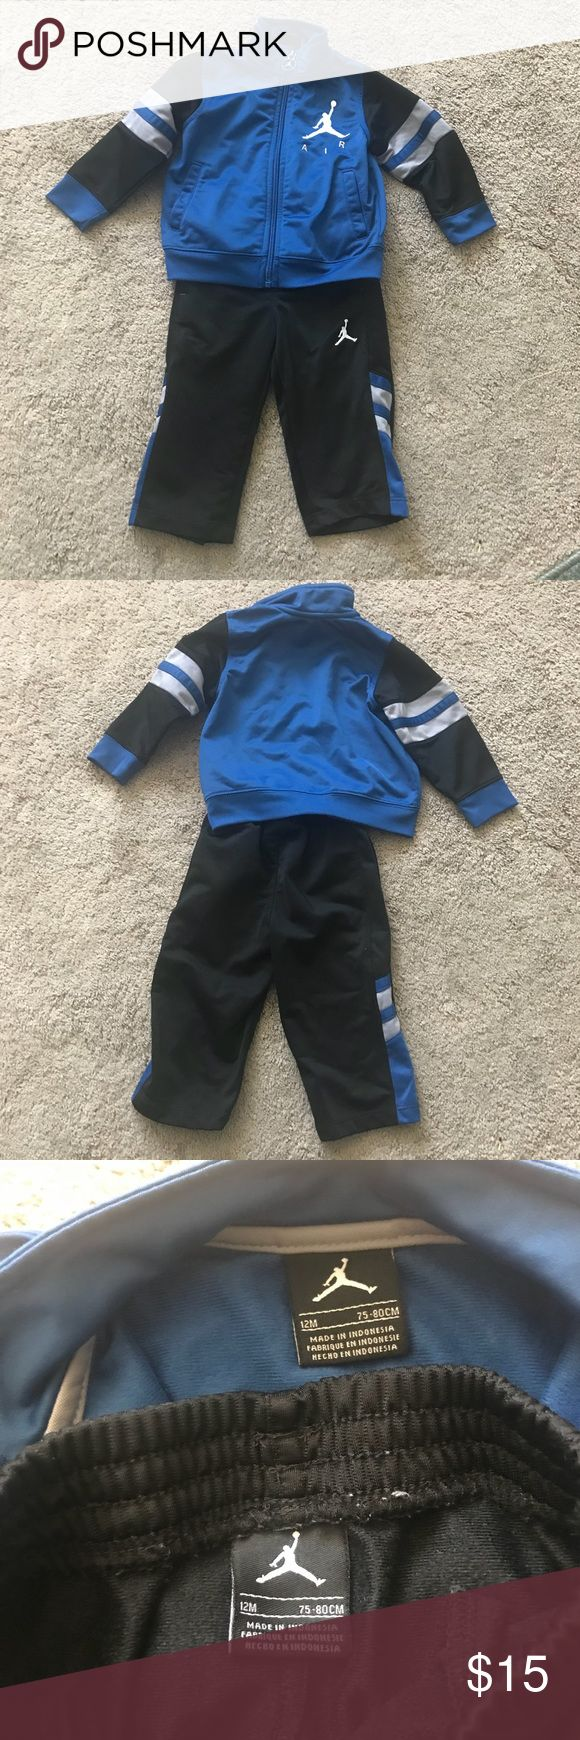 Air Jordan sweat suit Air Jordan sweat suit - size 12 months, gentally worn with no stains or holes. No pets, no smoking home. Growing kids. Air Jordan Matching Sets